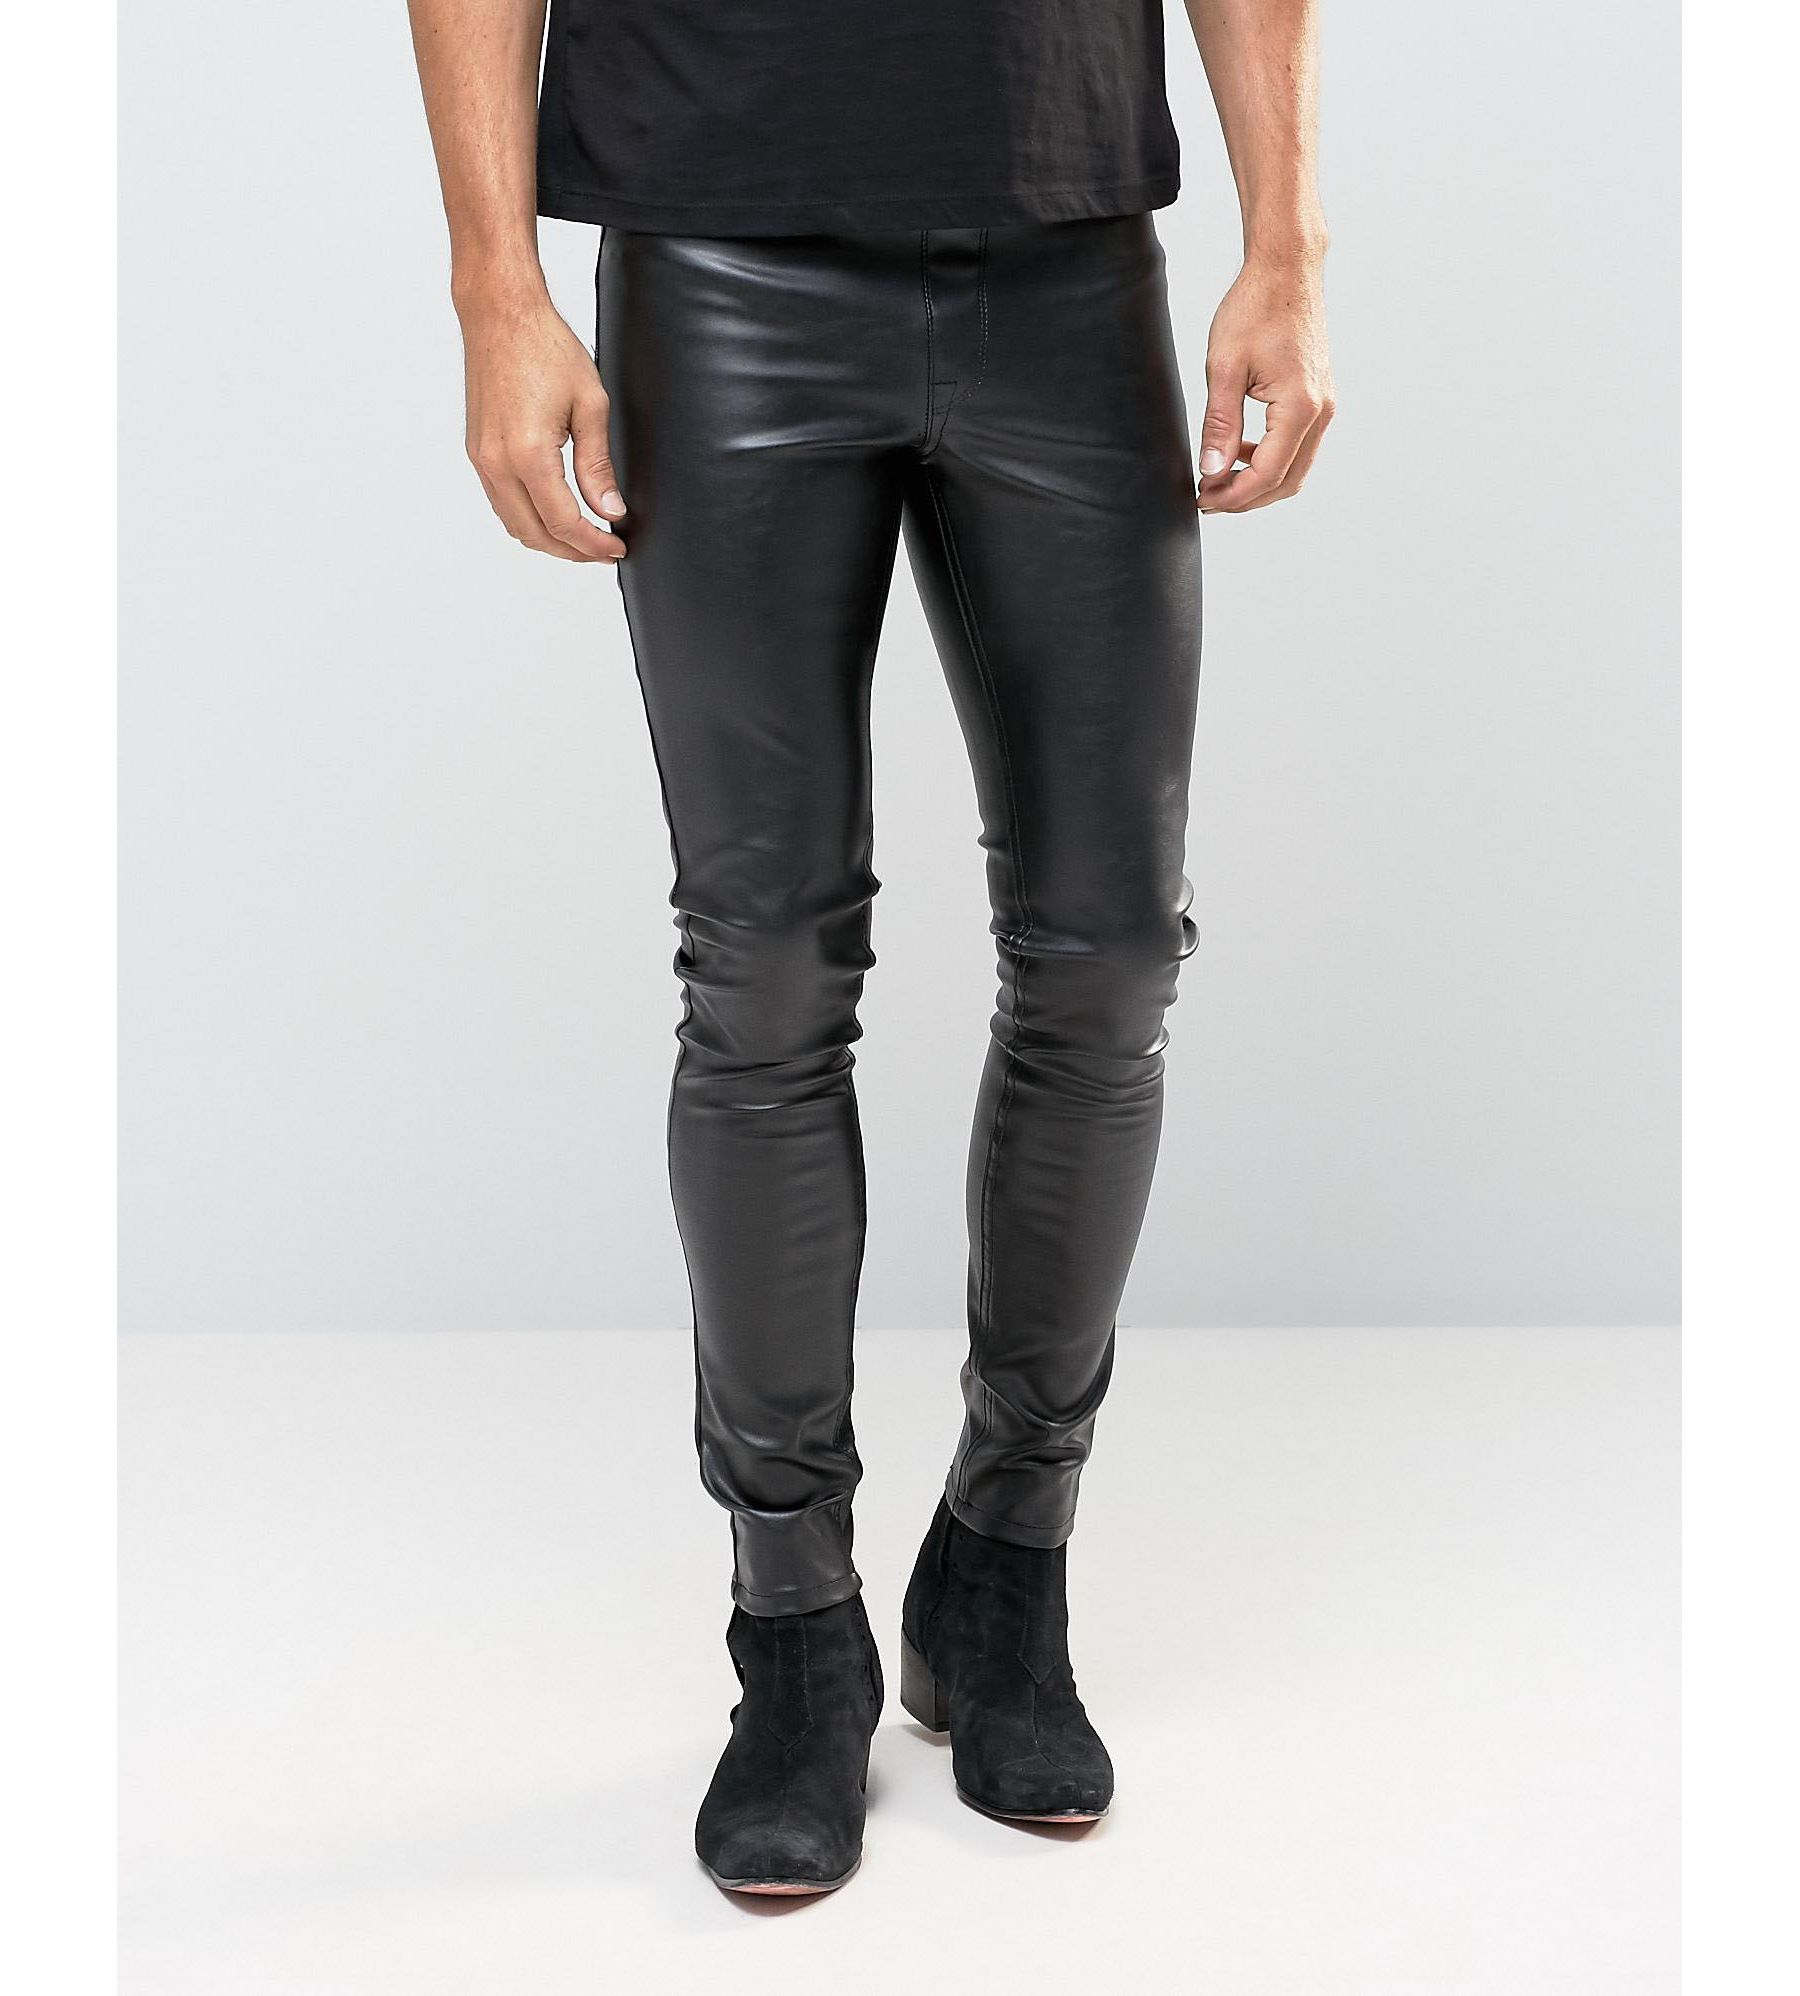 Looking for men's compression pants online? You don't need to go anywhere other than 24software.ml; We have products variety, fabric & cheap prices. Order your favorite leggings for men or you can say it meggings available online at very best price rates in the USA.